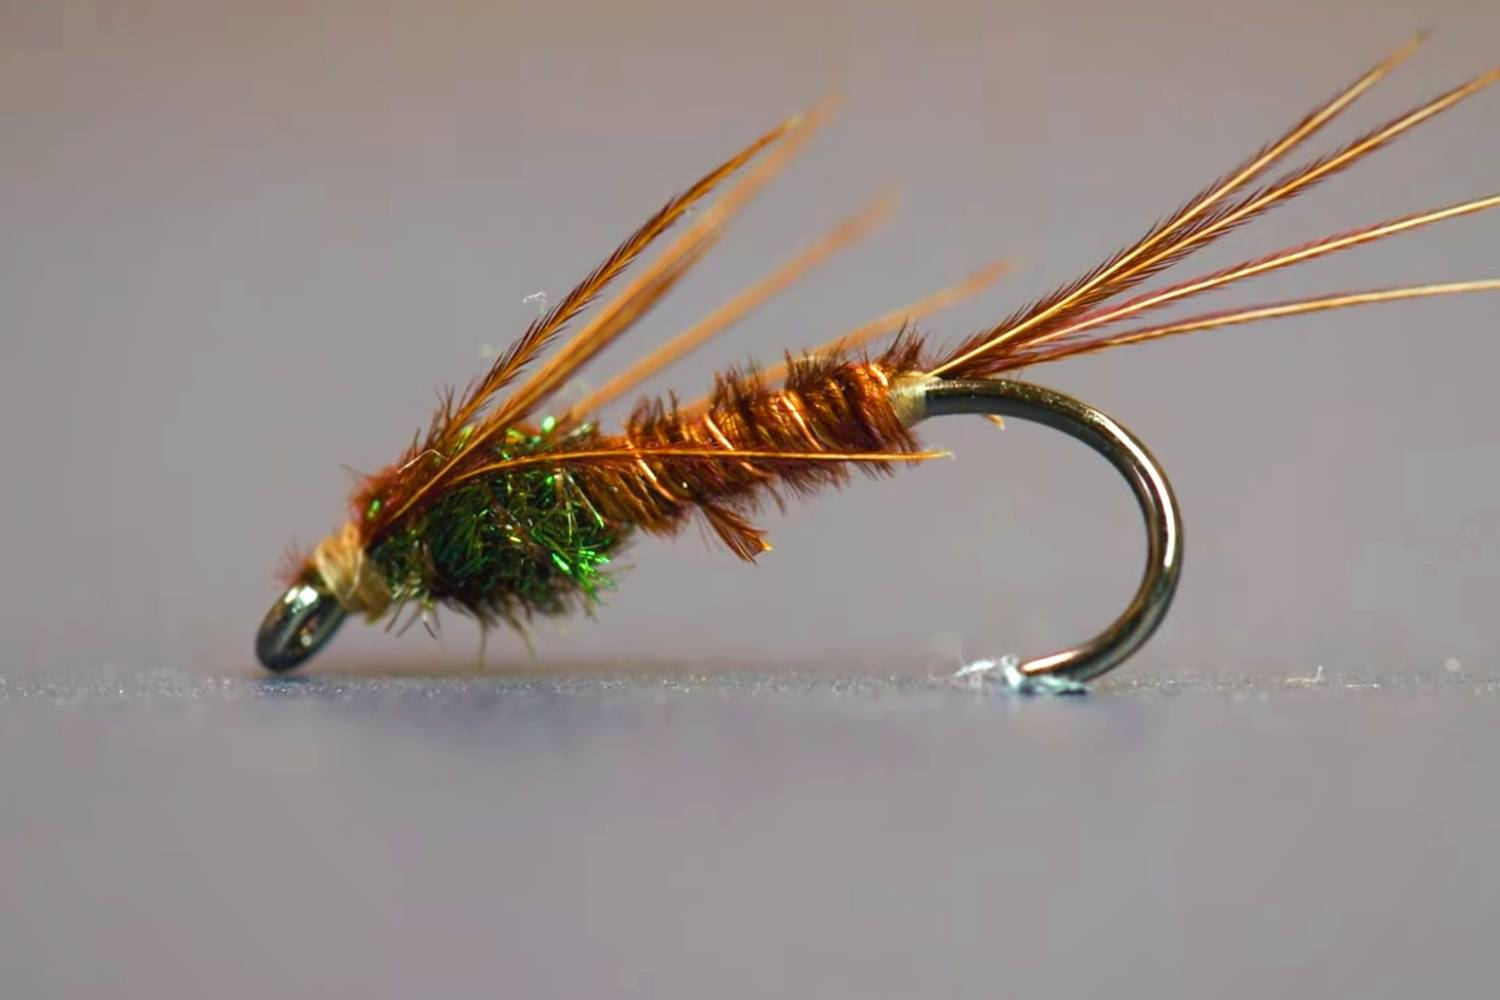 How To Fish The Pheasant Tail Nymph